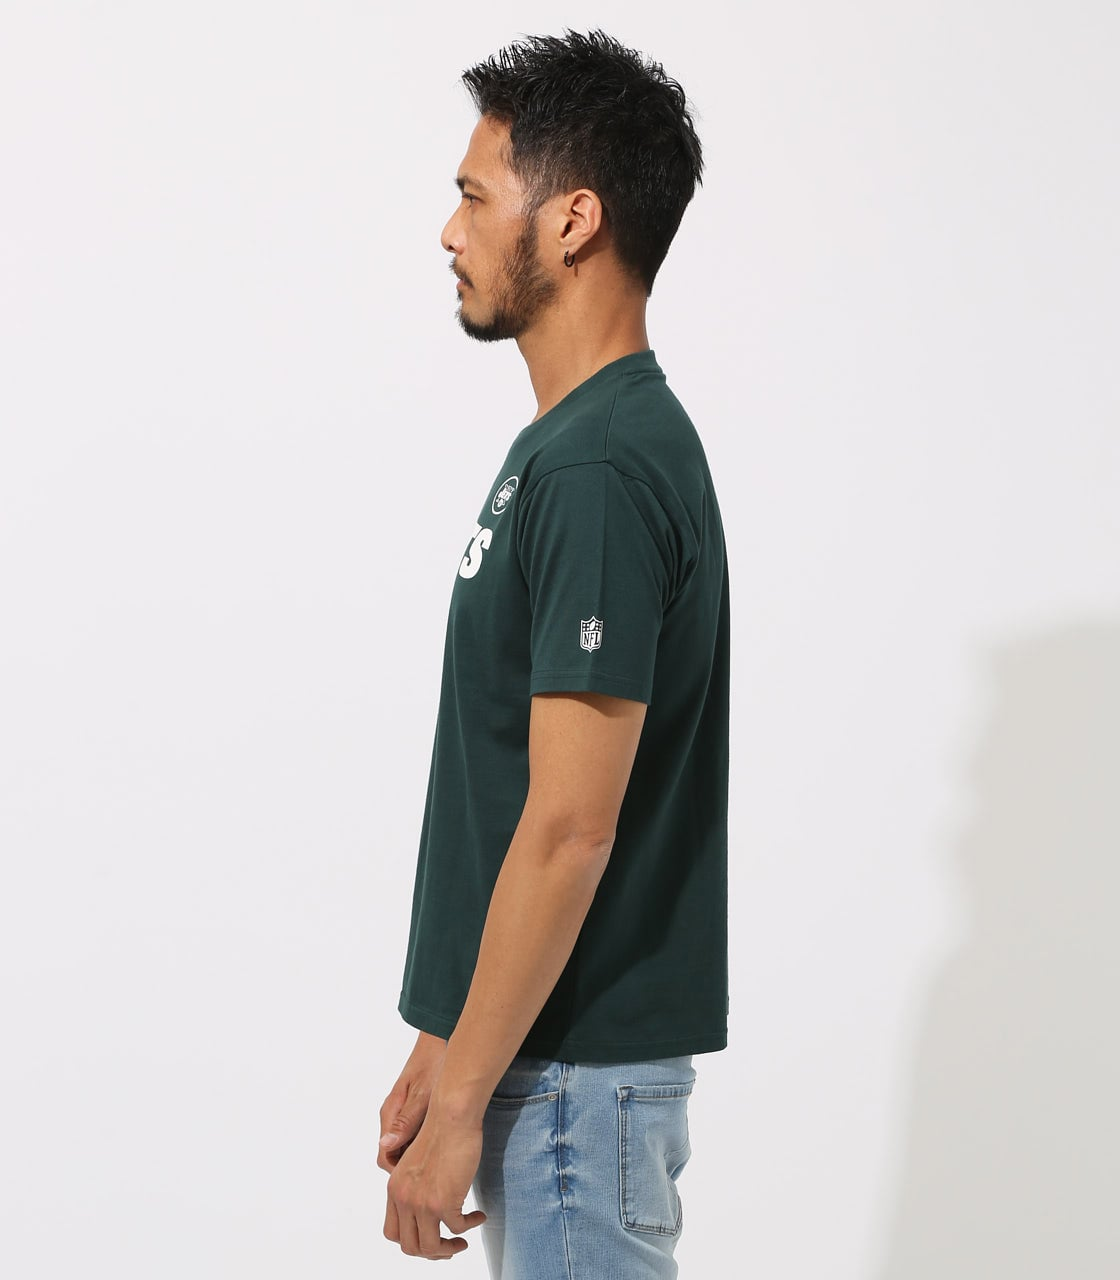 【AZUL BY MOUSSY】NFL JETS TEE 詳細画像 D/GRN 5